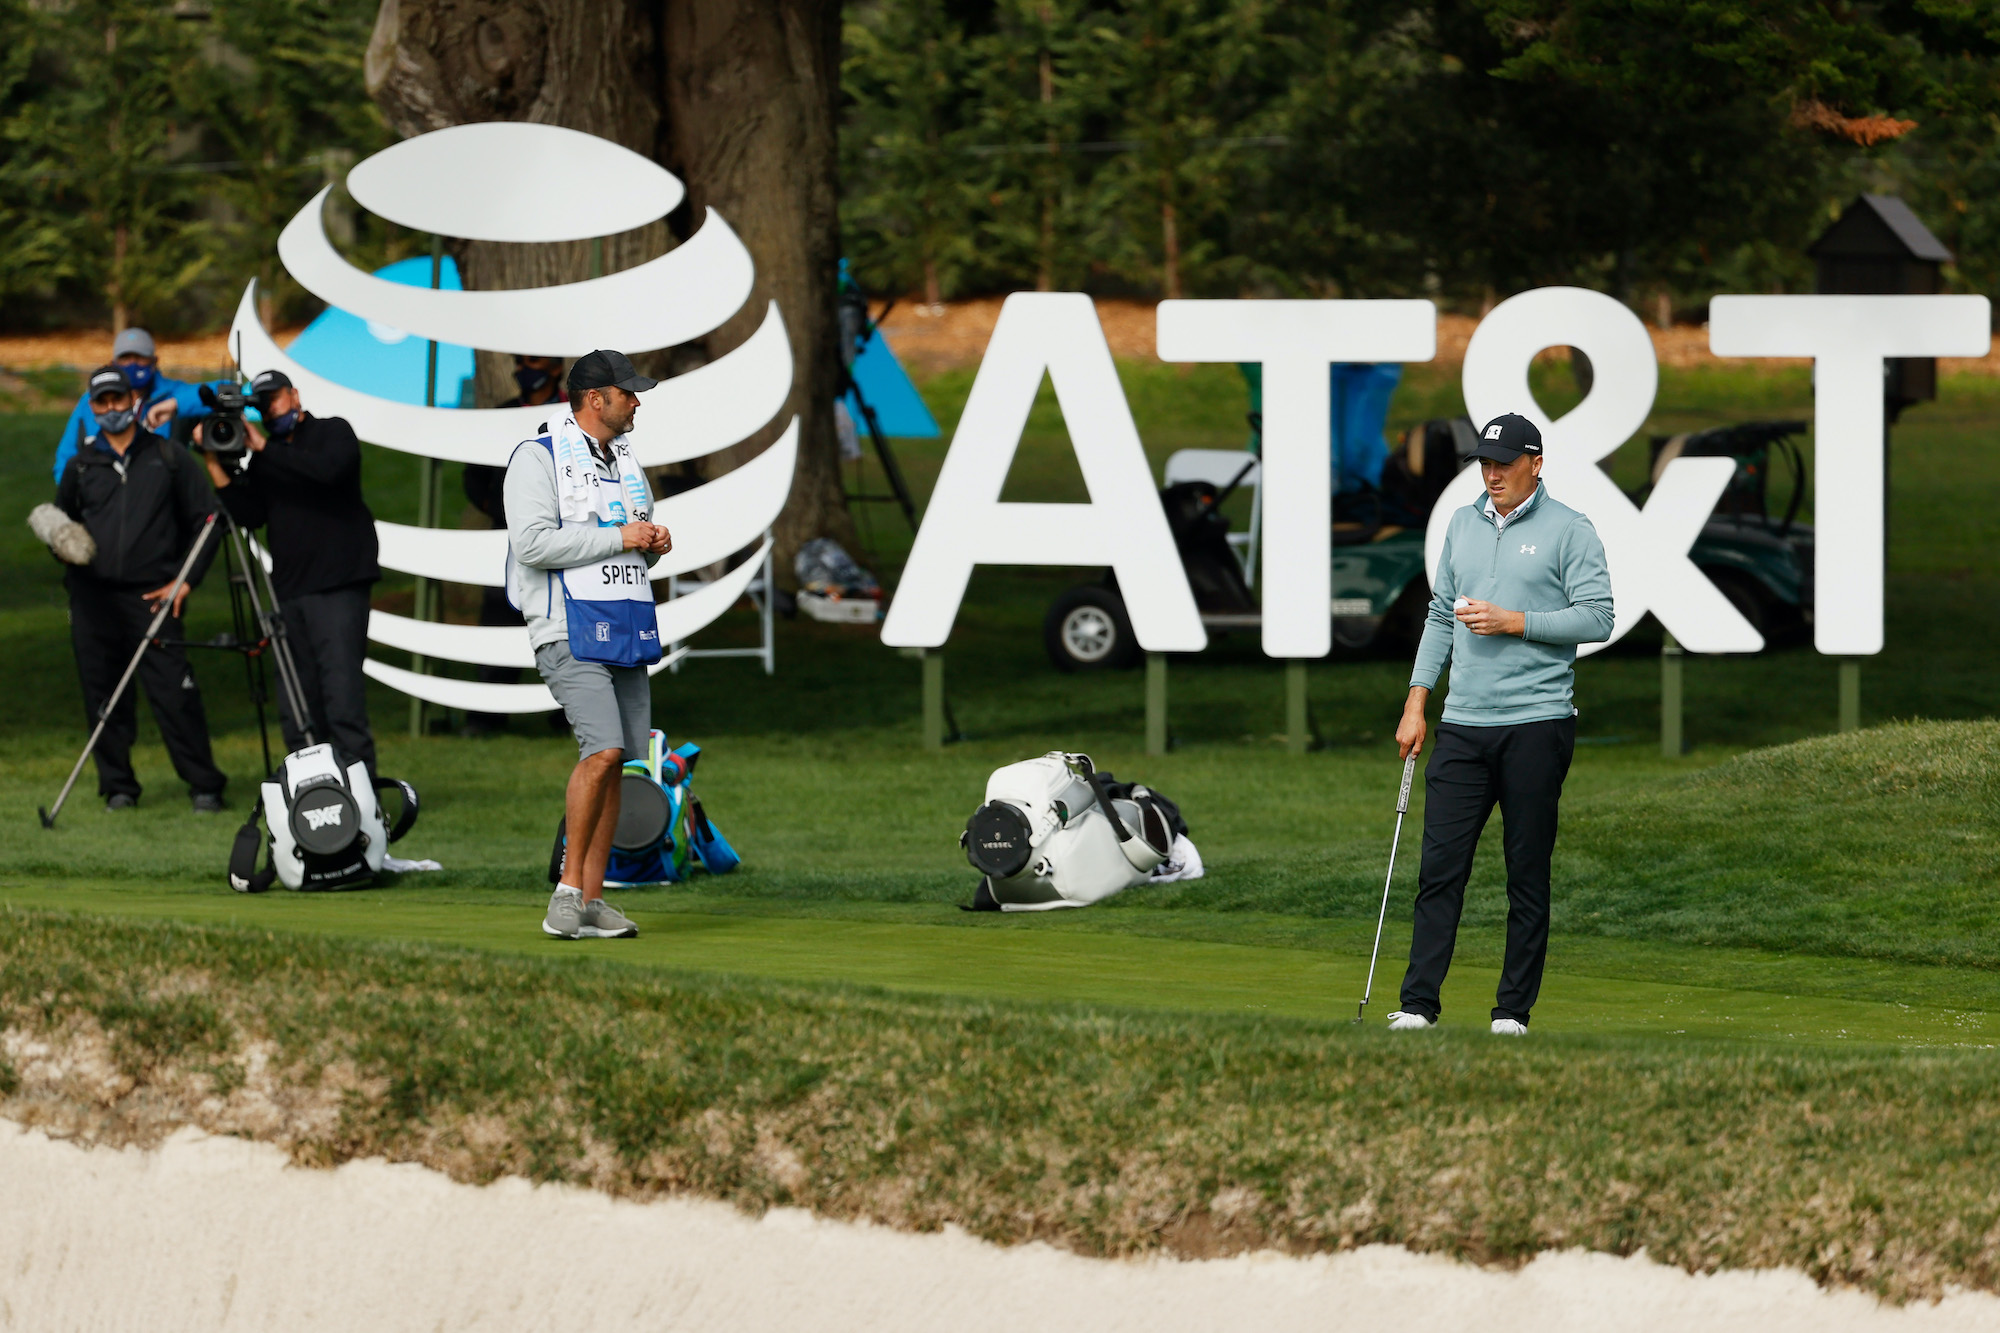 2021 AT&T Pebble Beach Pro-Am: Round 3 - Jordan During the Third Round